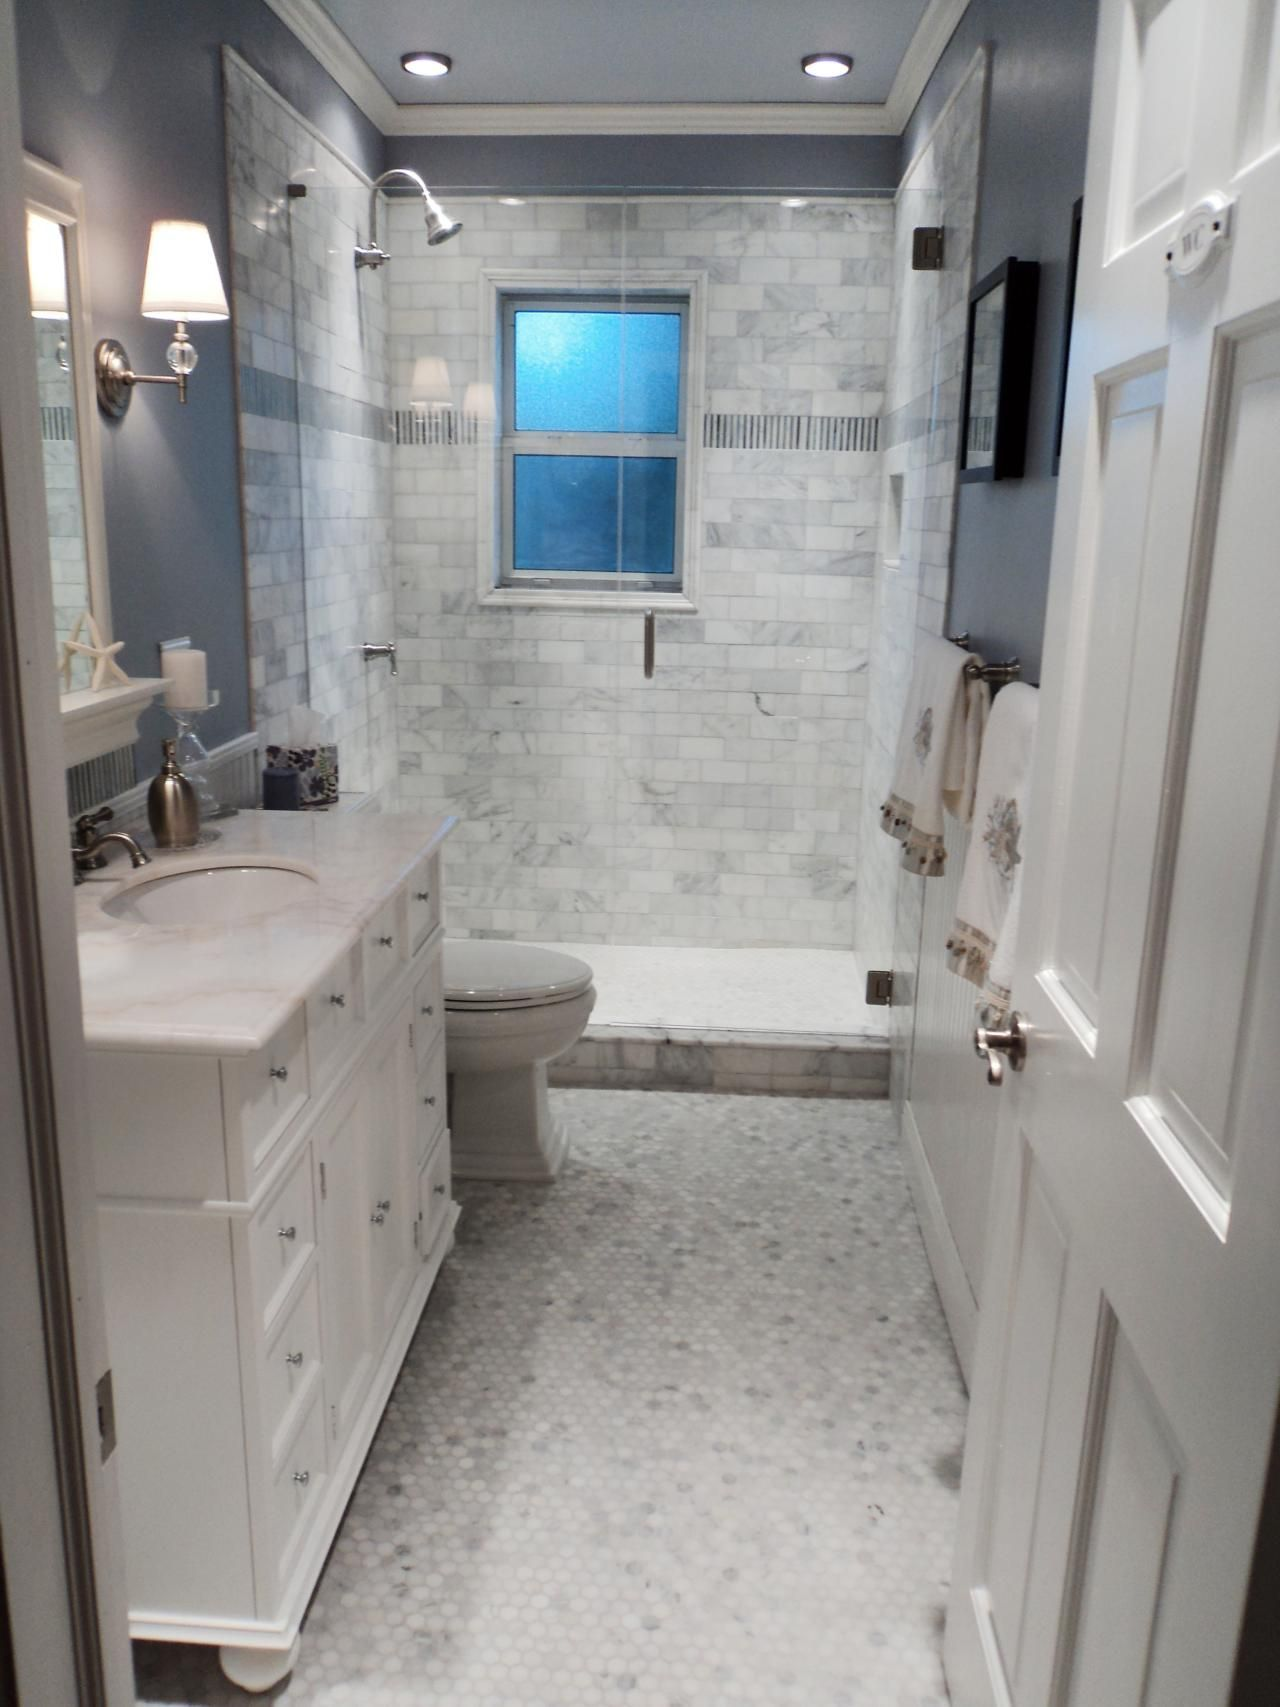 9 Secret Advice To Make An Outstanding Home Bathroom Remodel Stylish Bathroom Small Master Bathroom Bathroom Remodel Master Bathroom renovation melbourne fl